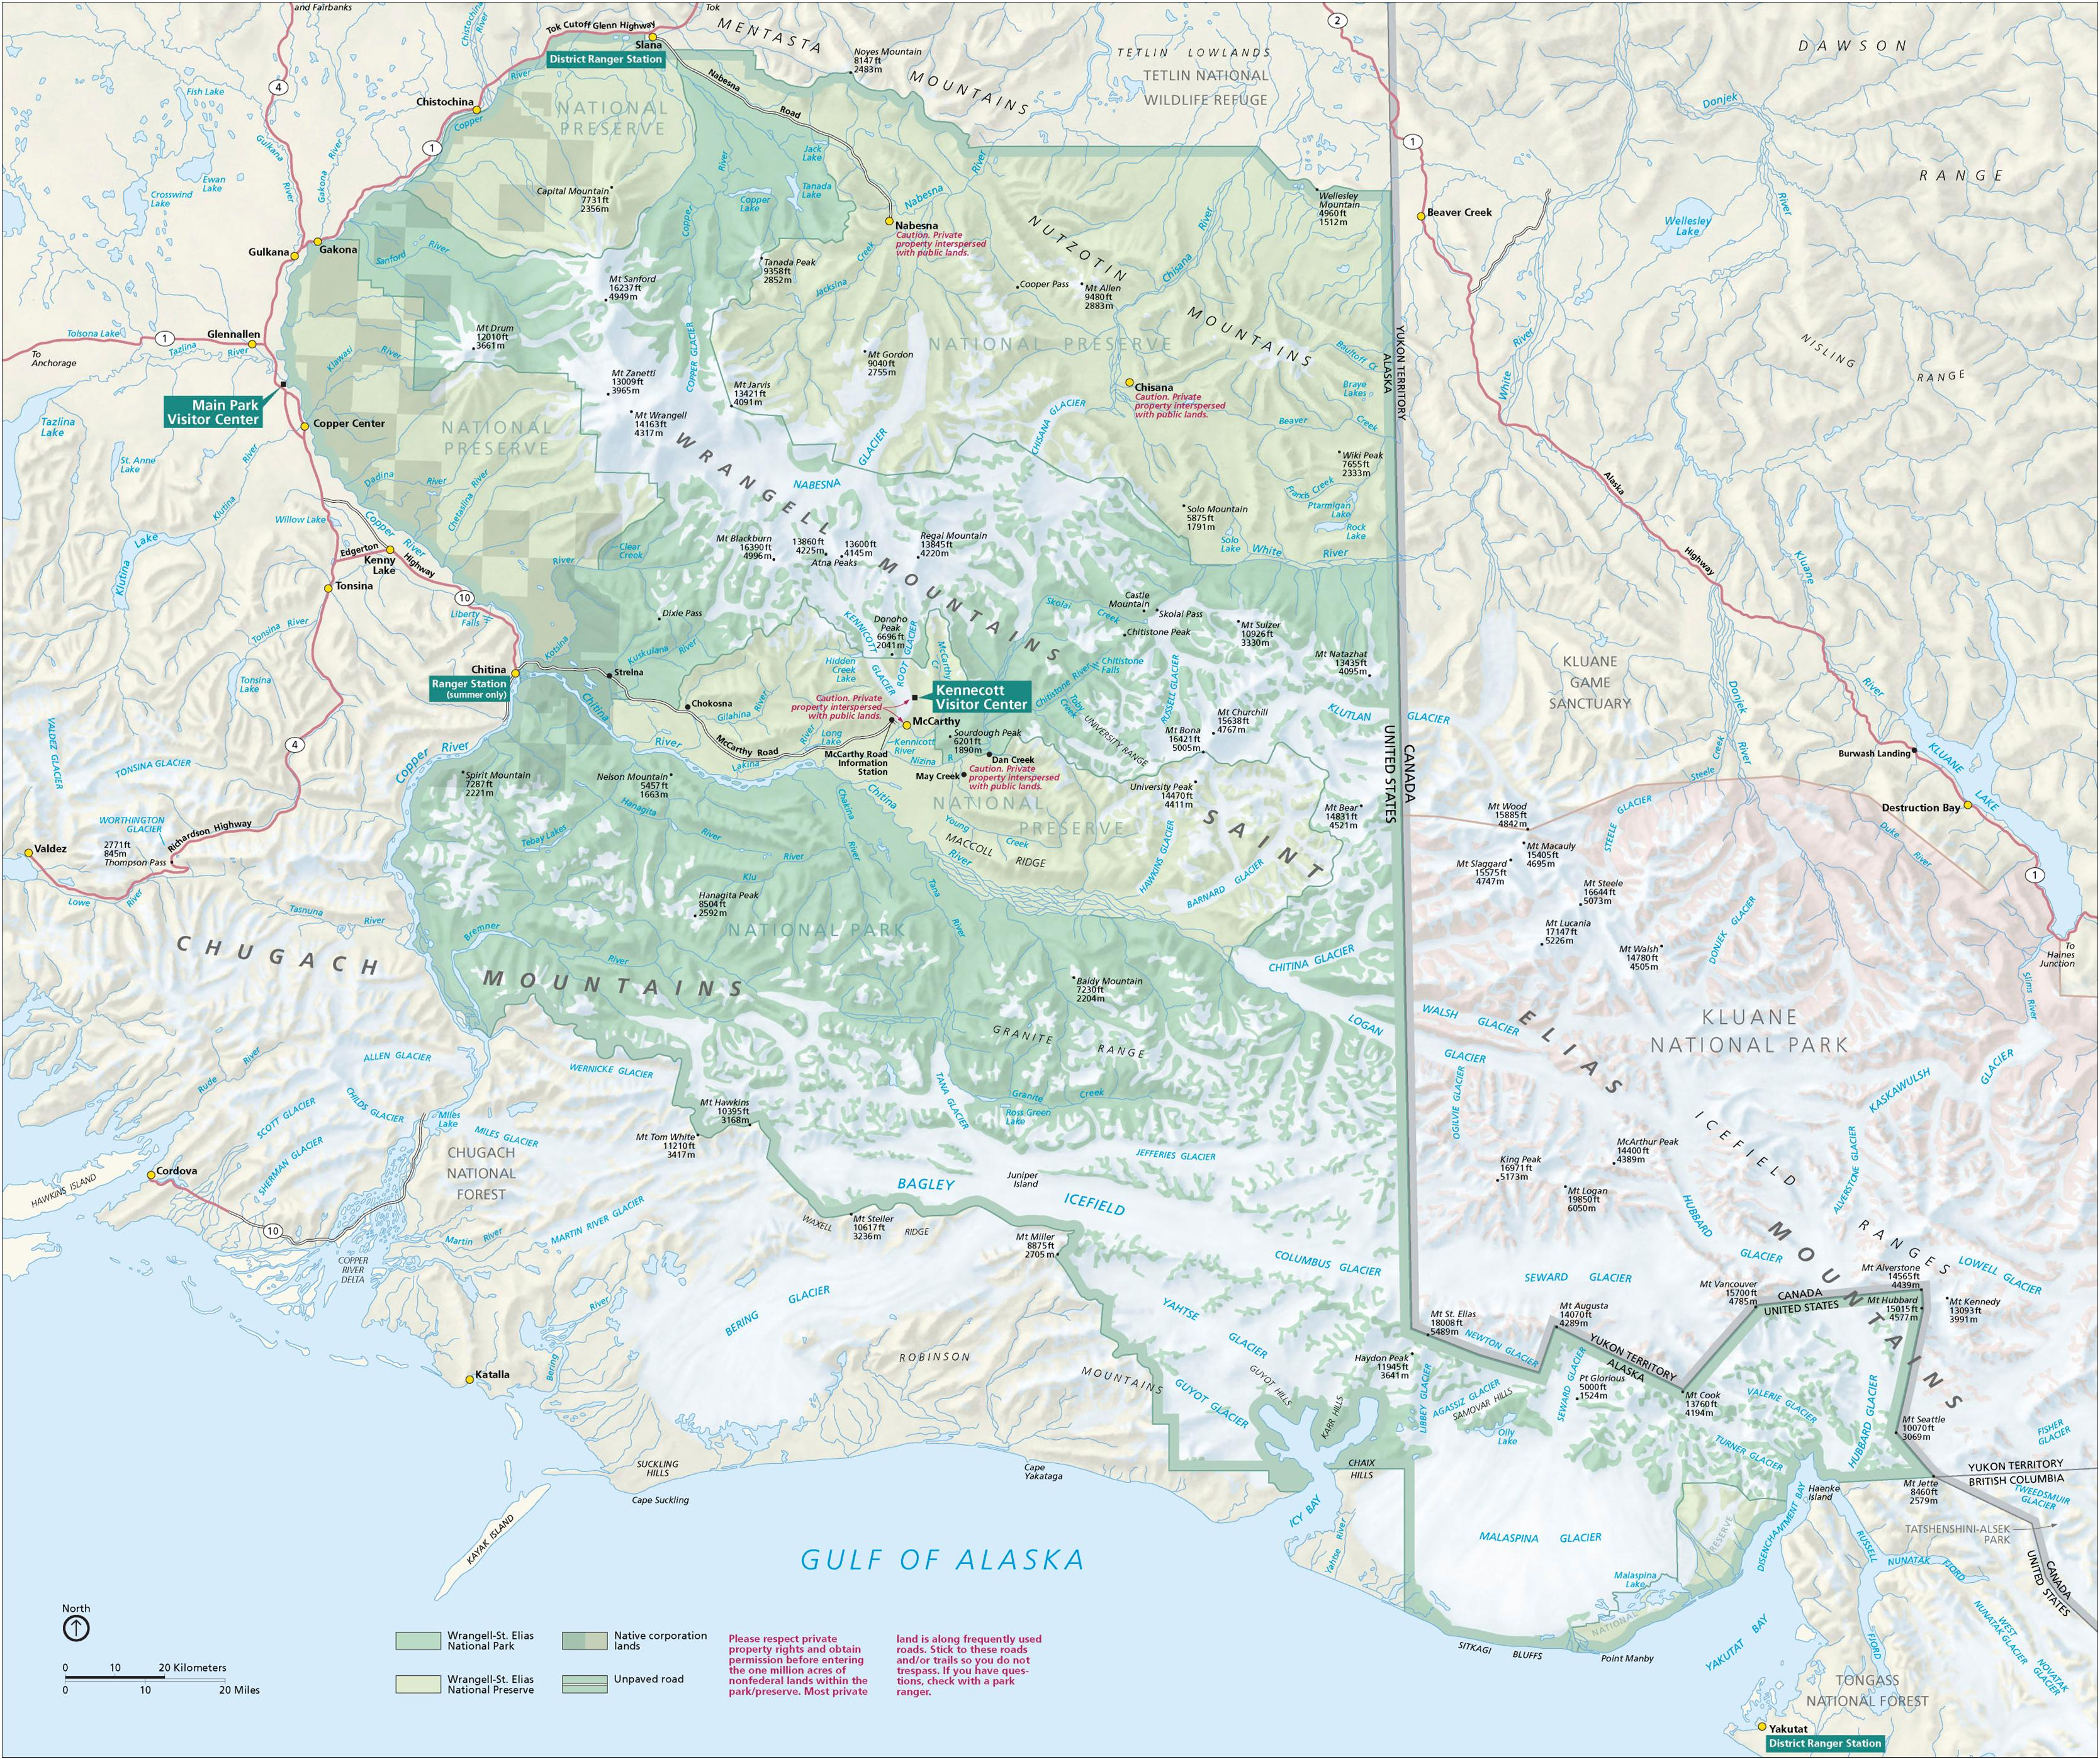 Brochures Wrangell St Elias National Park Preserve US - Map of all national parks in us